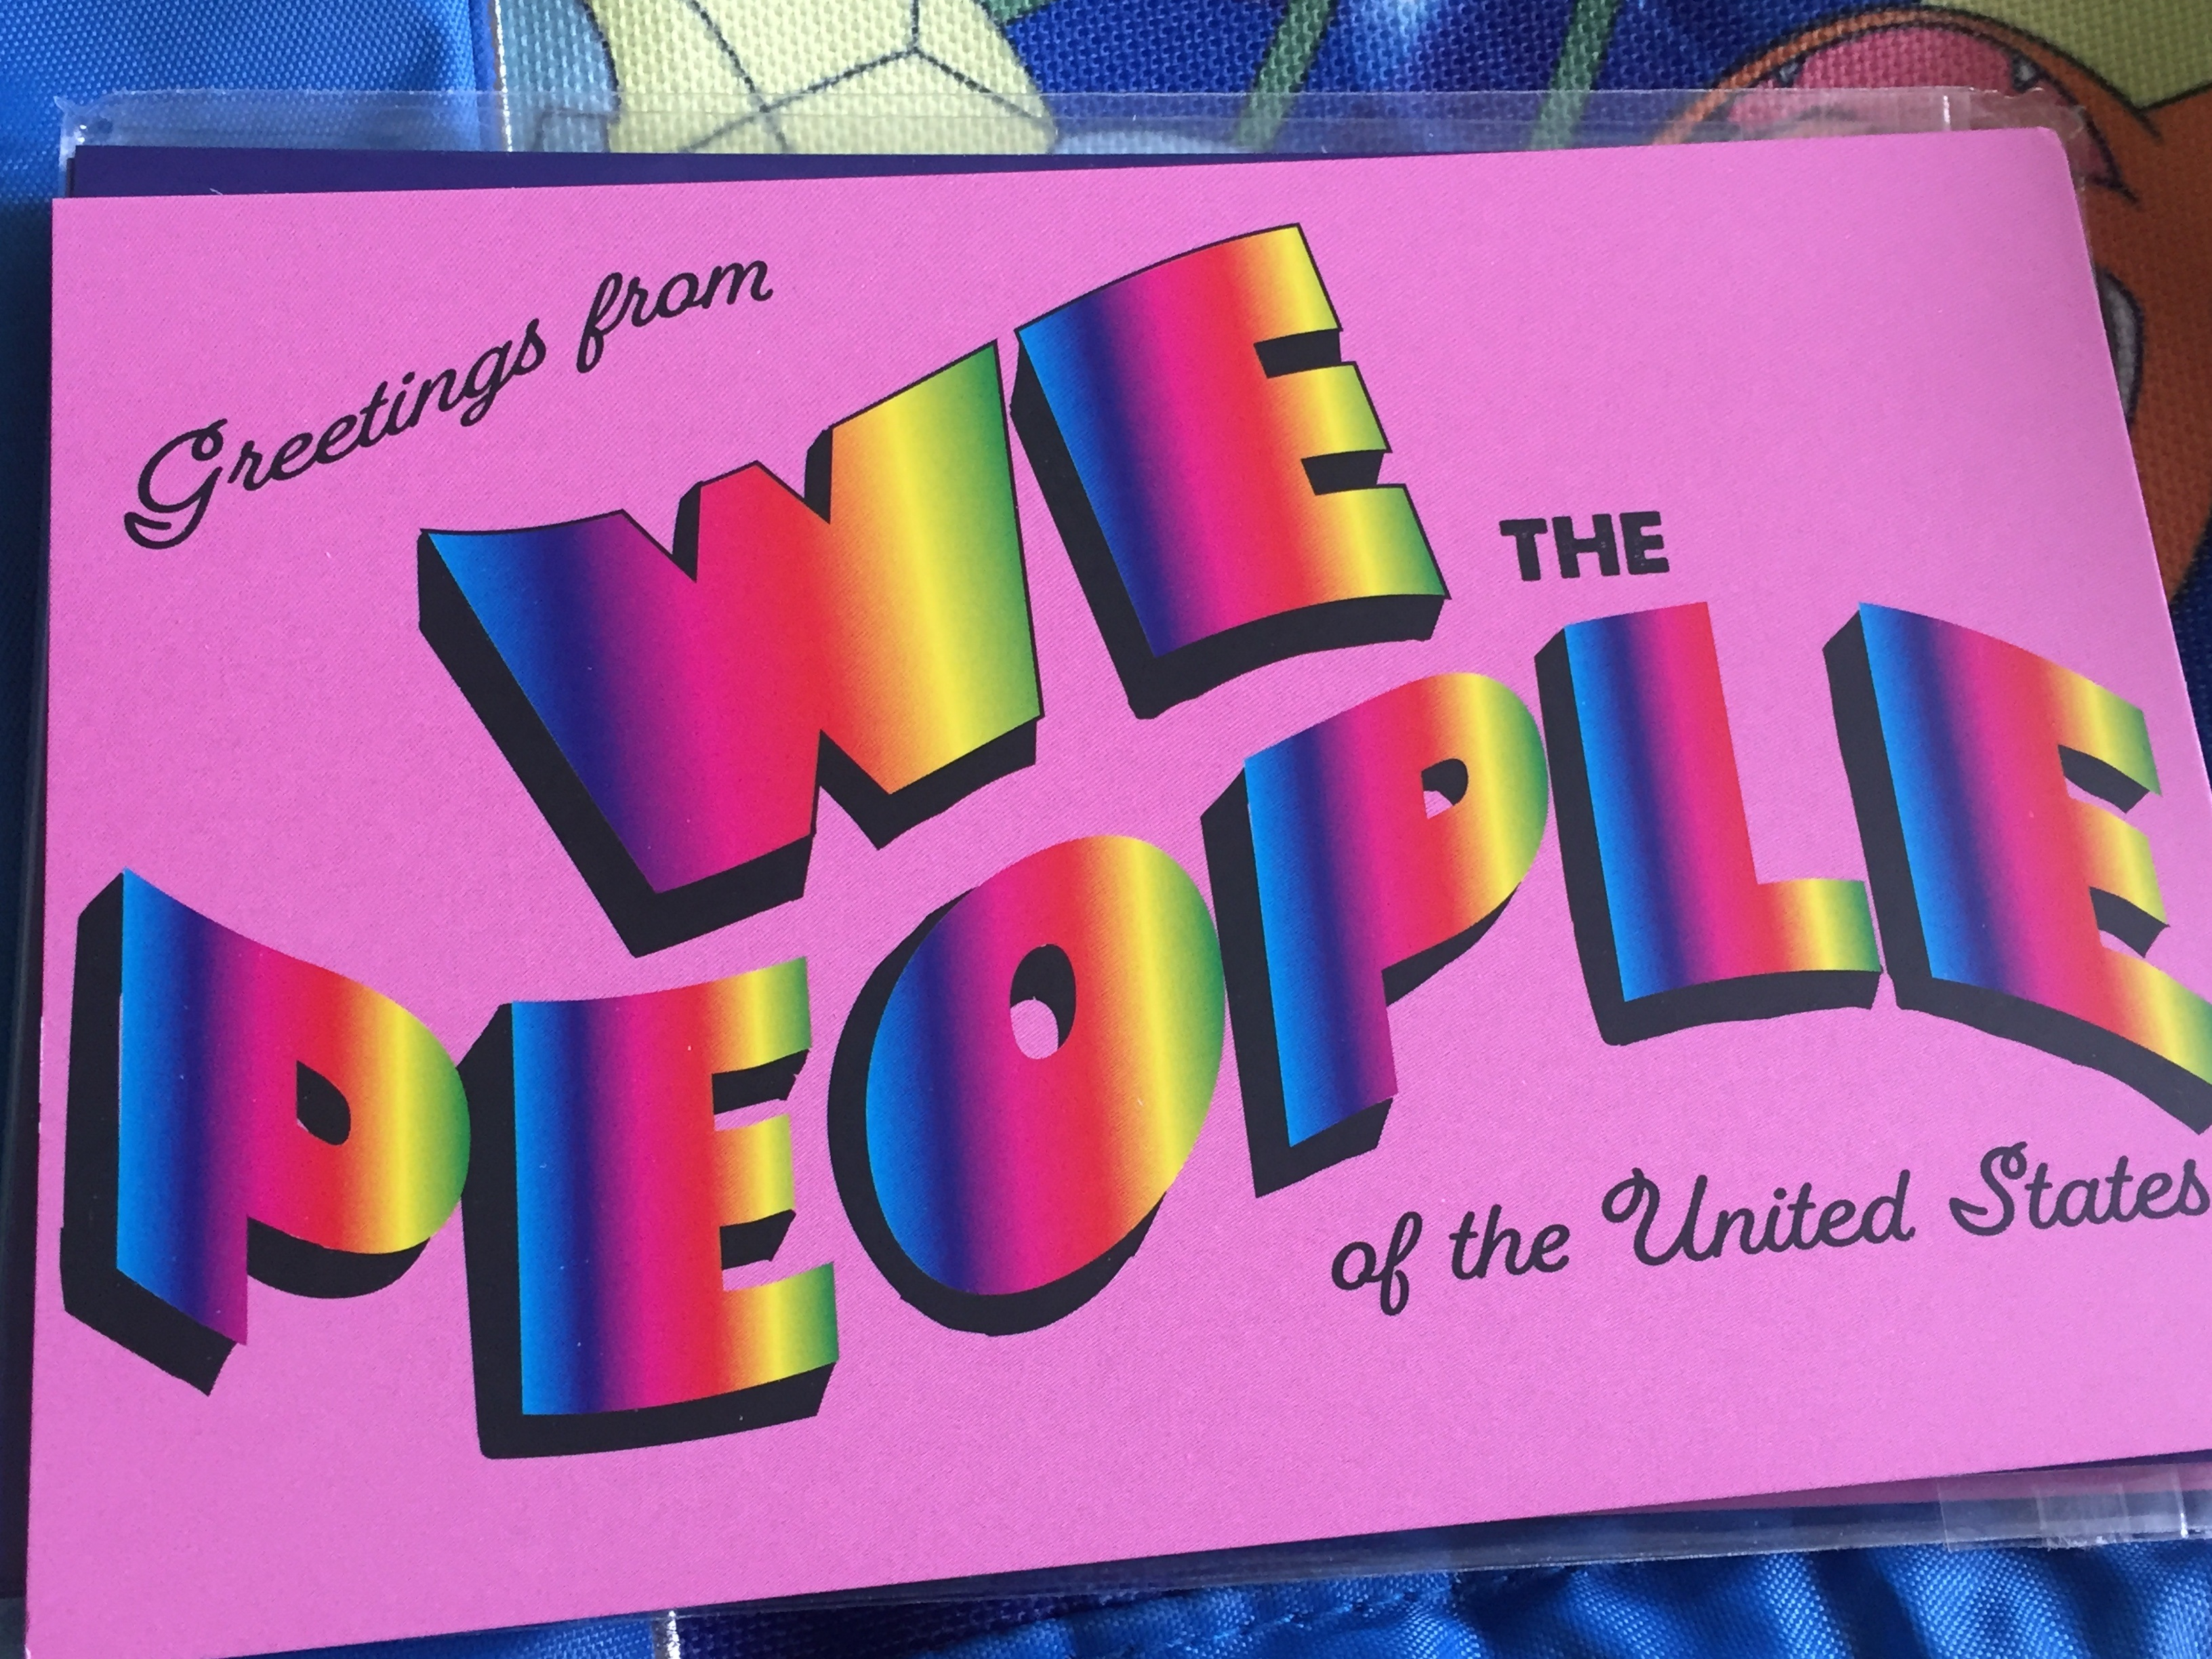 We the People poscard by Wendy Sheridan